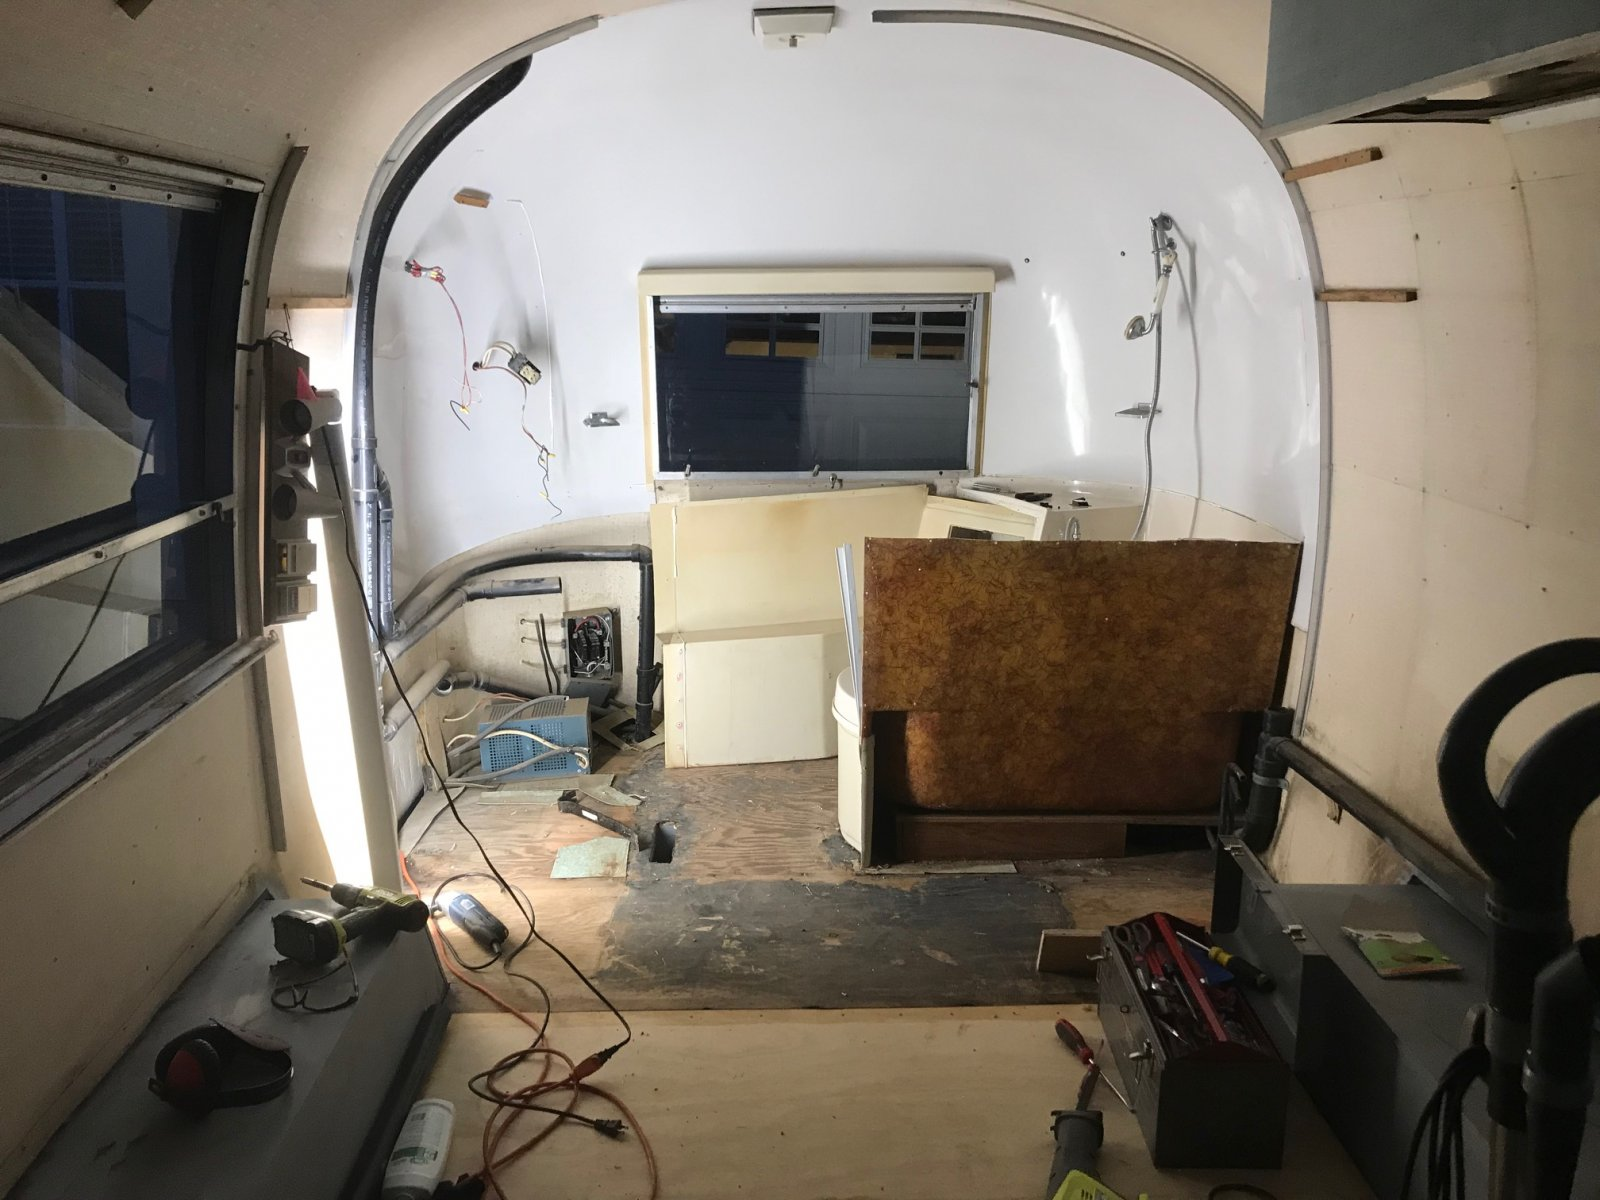 Click image for larger version  Name:Airstream bathroom demo.jpg Views:85 Size:239.5 KB ID:306961